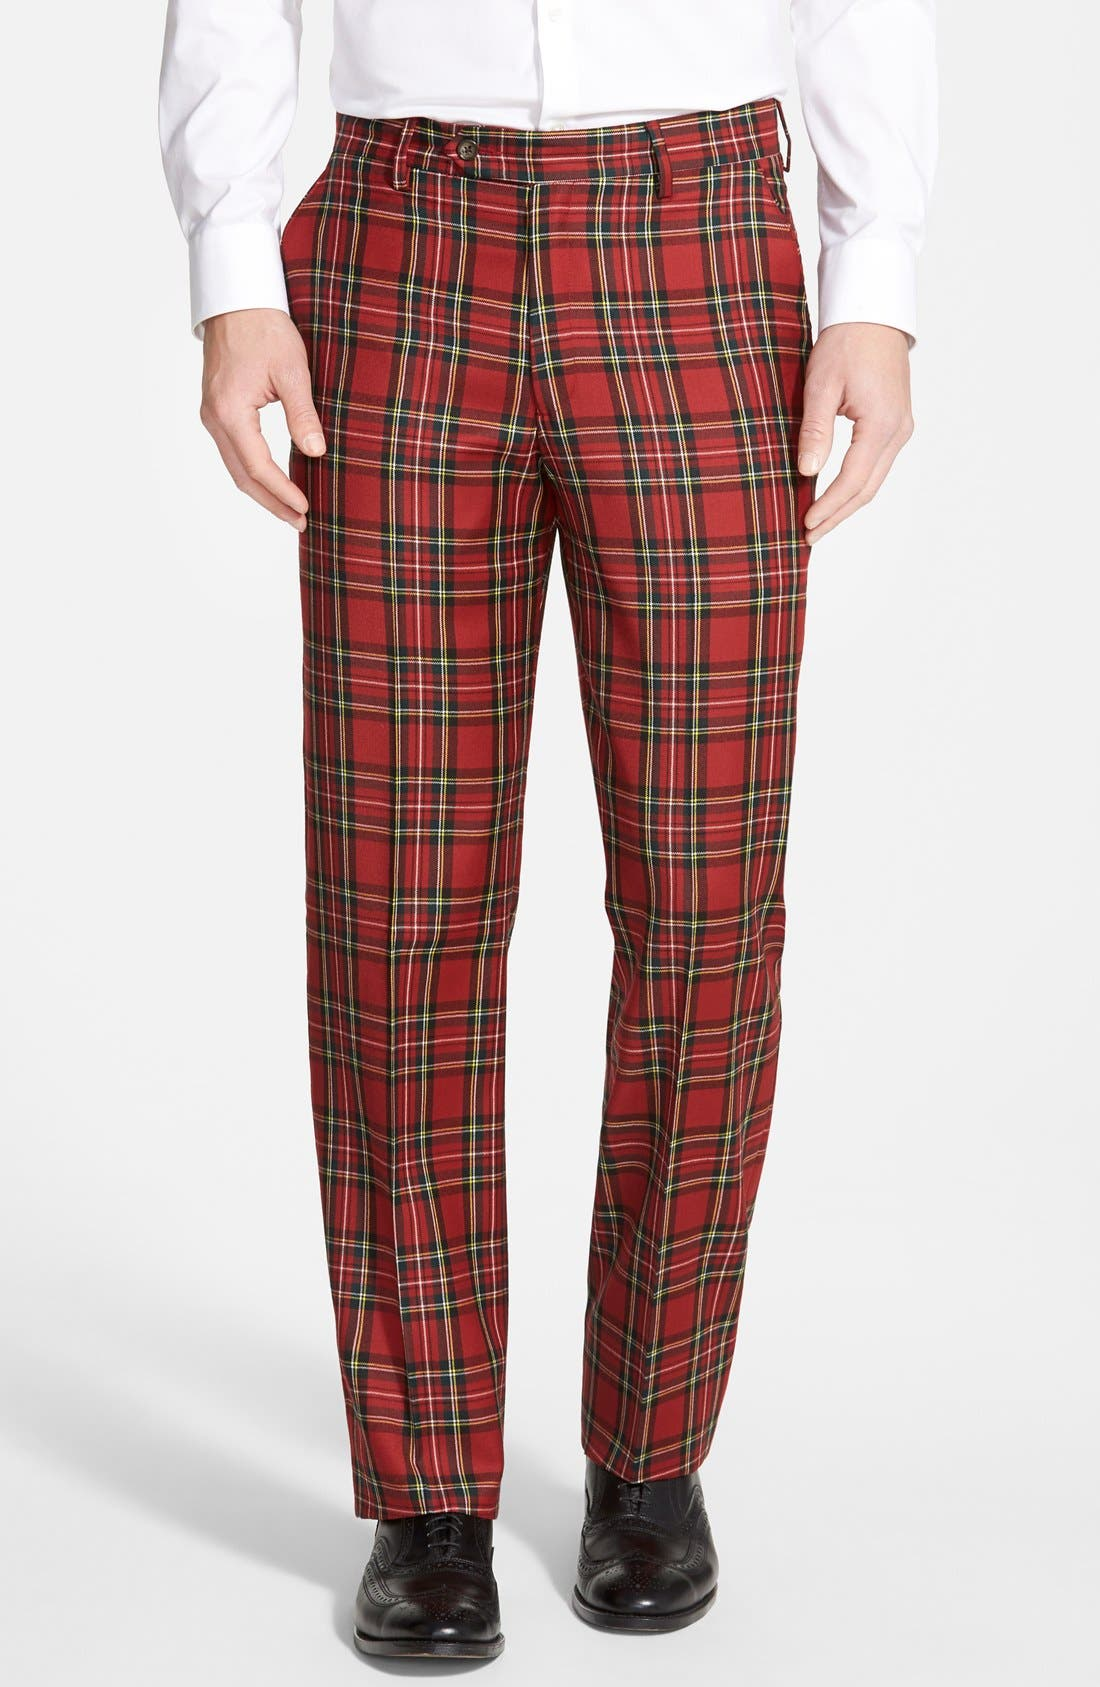 BERLE, Flat Front Plaid Wool Trousers, Main thumbnail 1, color, RED